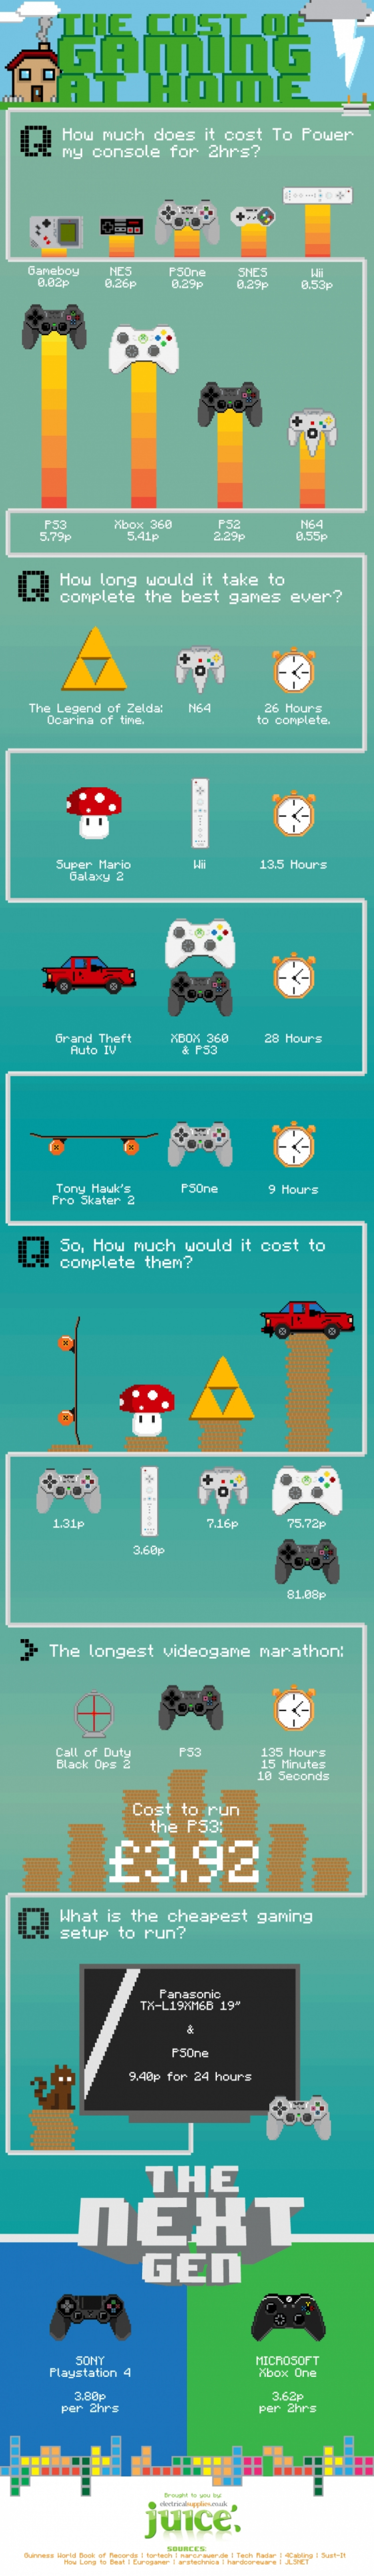 The Cost Of Gaming at Home Infographic